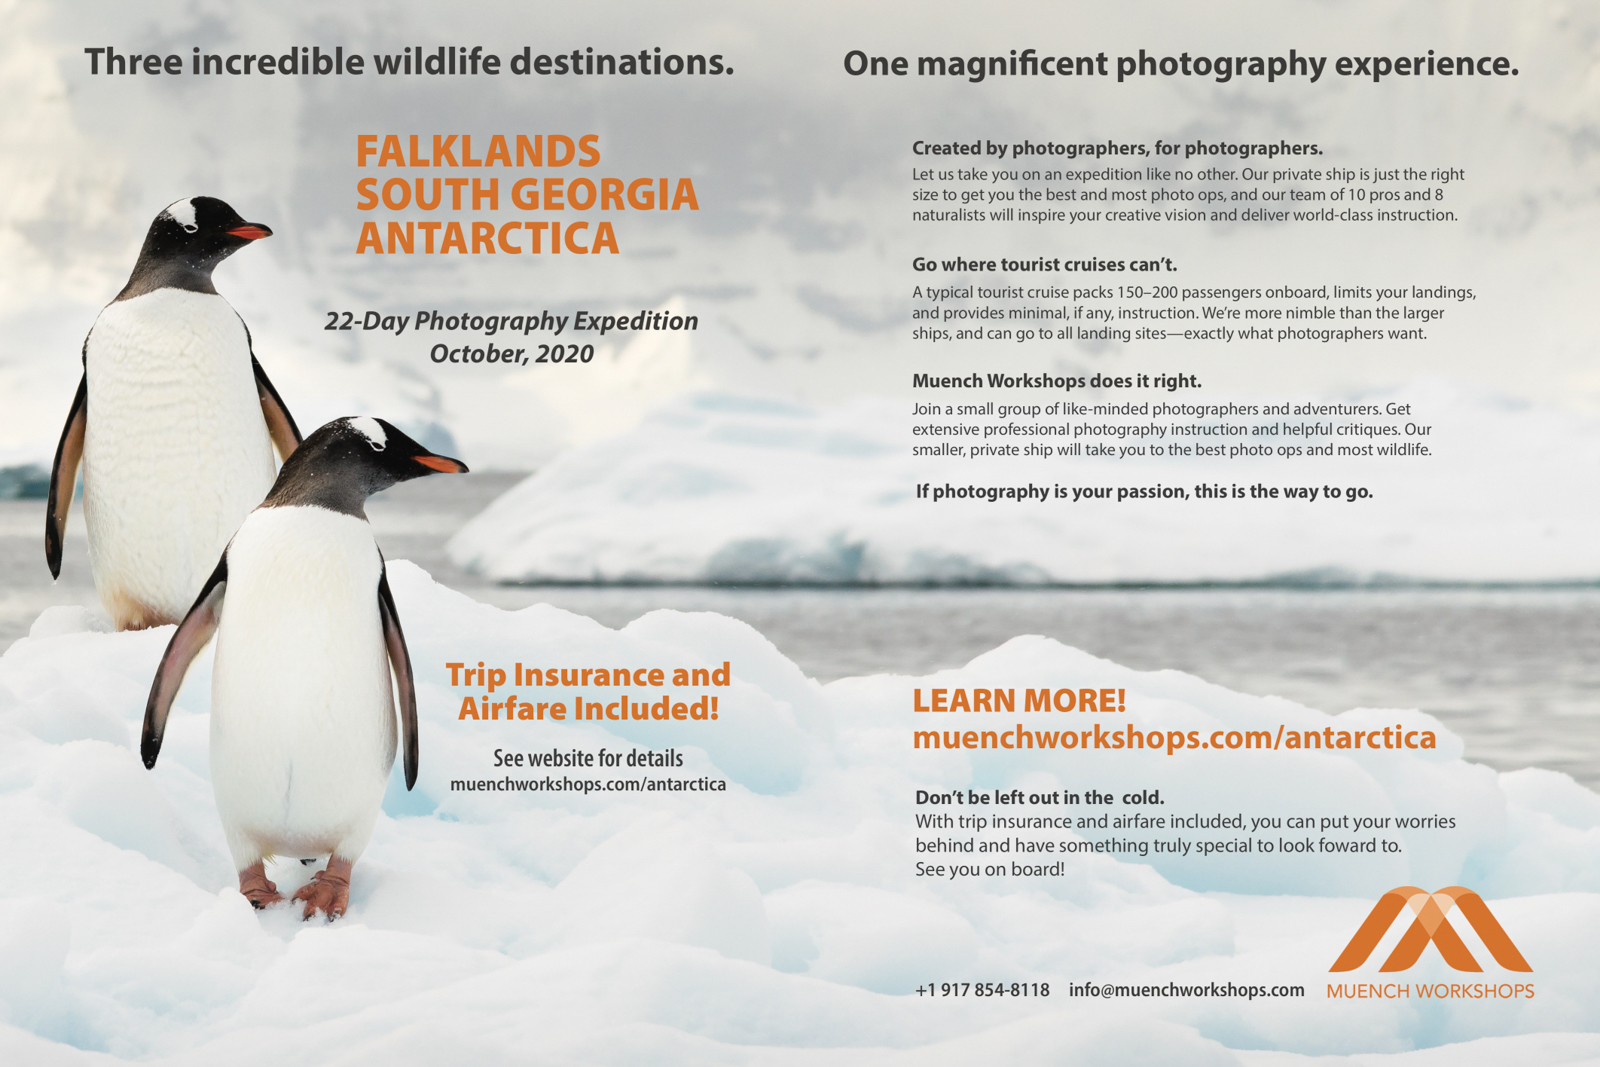 south georgia falklands antarctica photo expedition.jpg